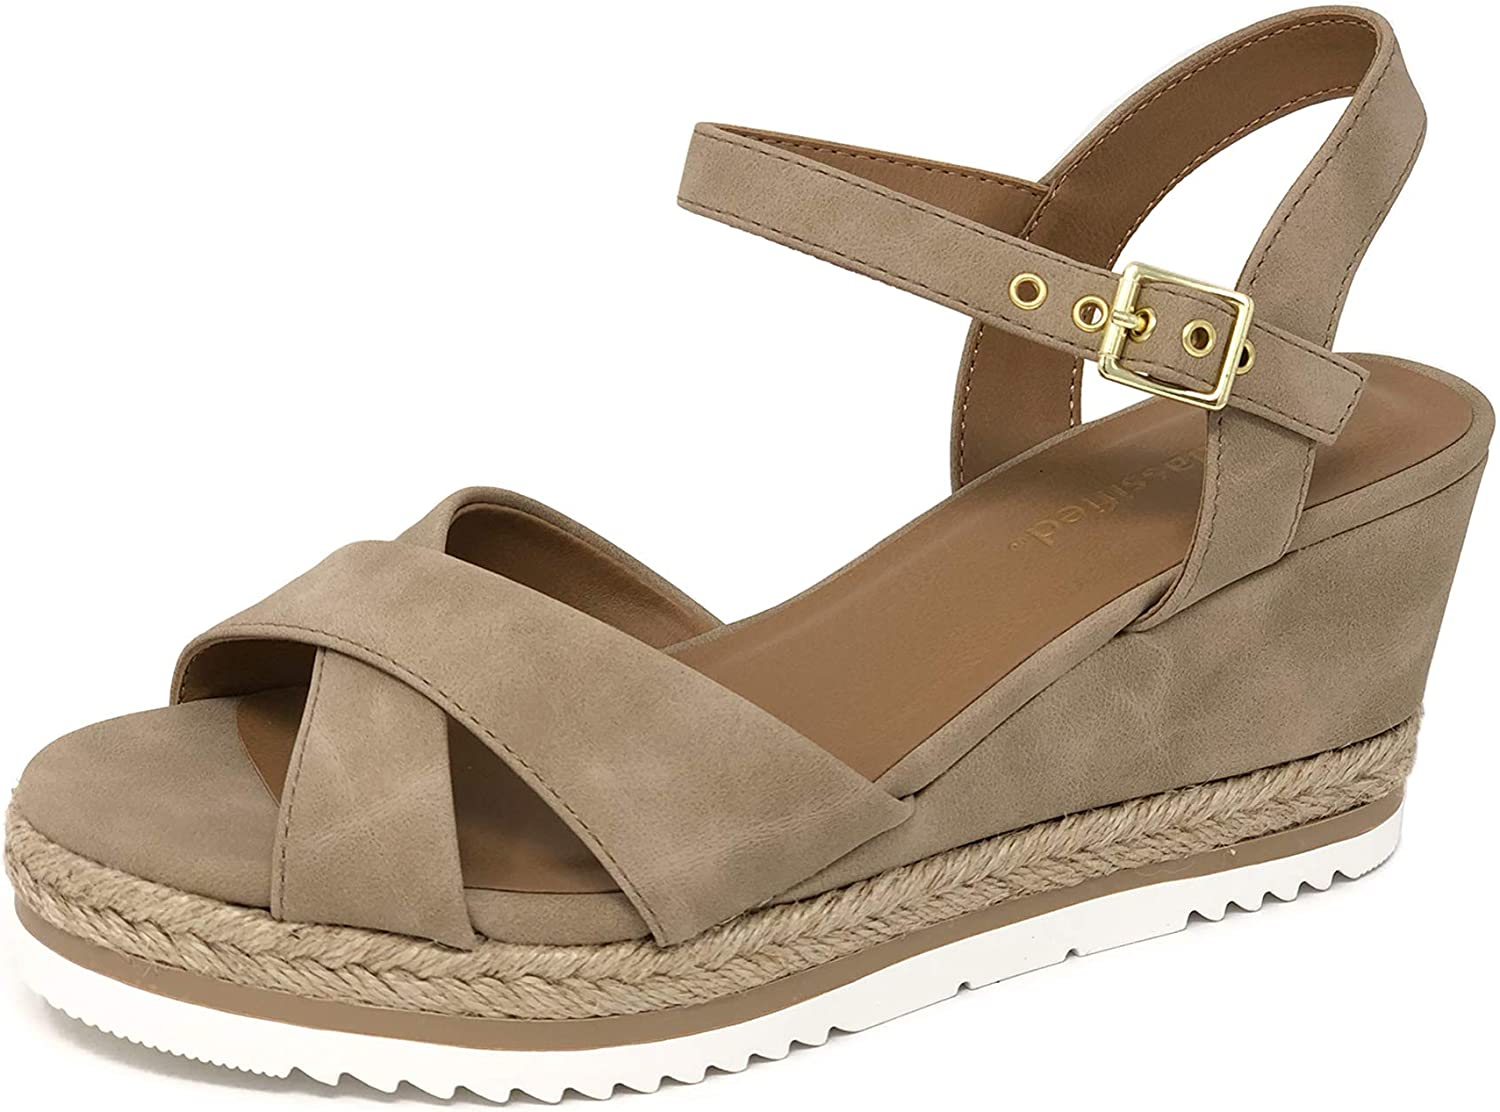 CITYCLASSIFIED City Classified Women's Criss Cross Open Toe Strappy Sandal Taupe on 8 M US